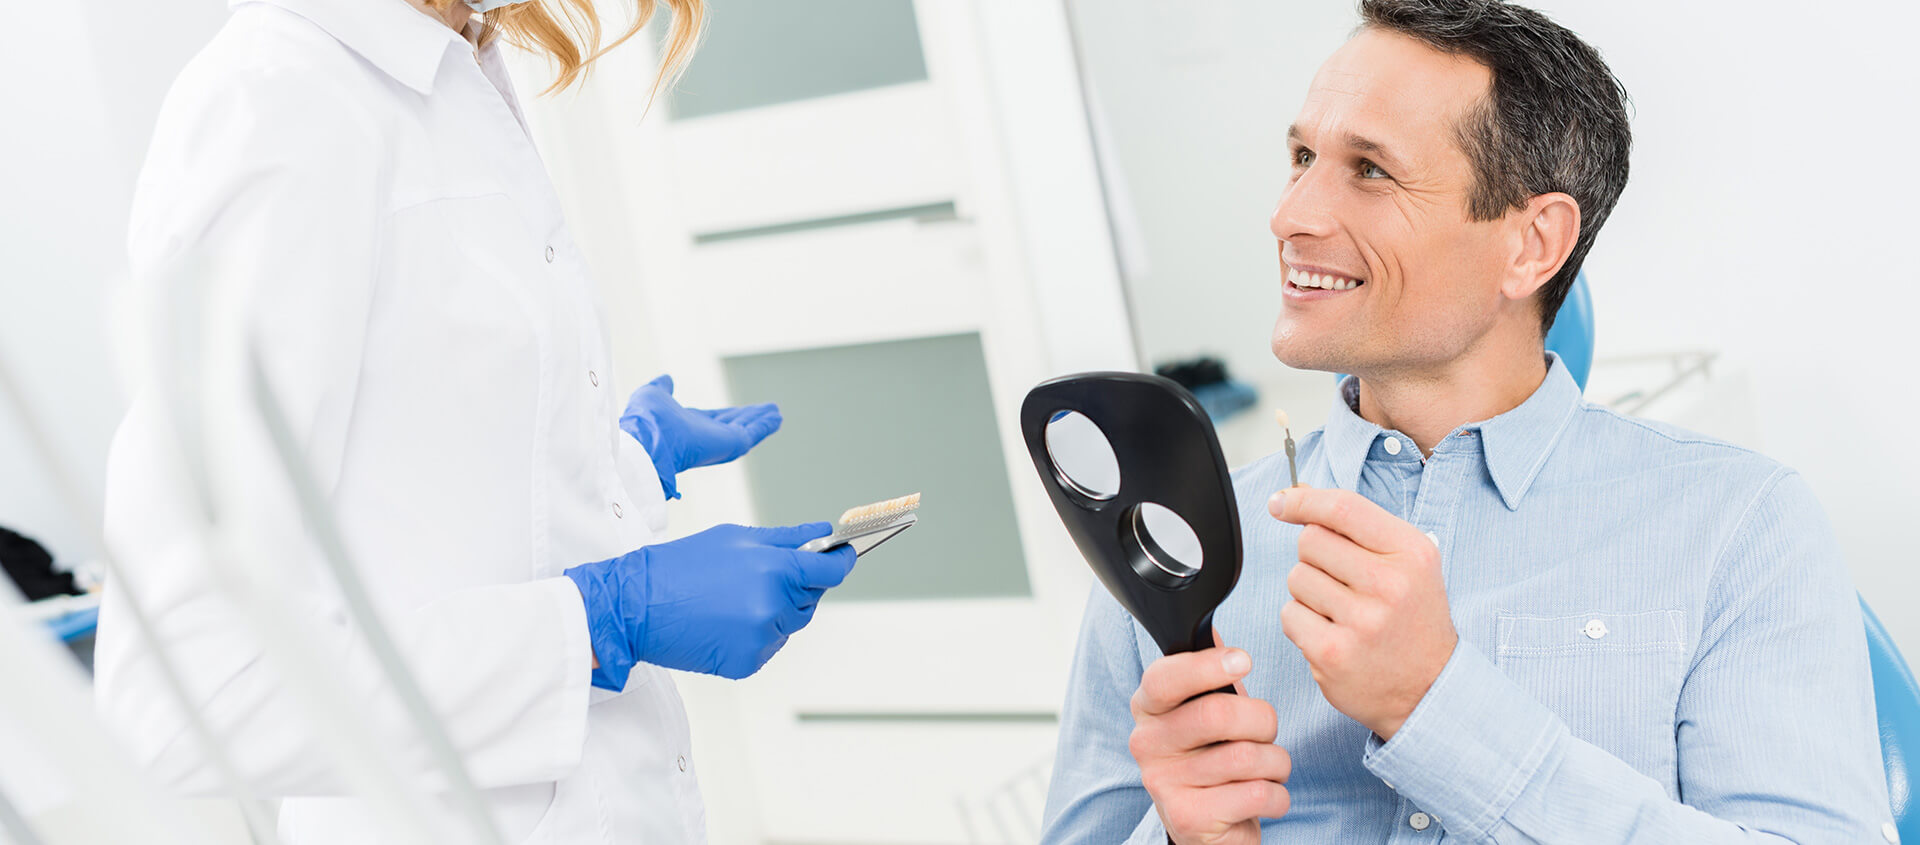 Georgetown area dentist offers all-on-4 dental implants as a tooth replacement option for patients